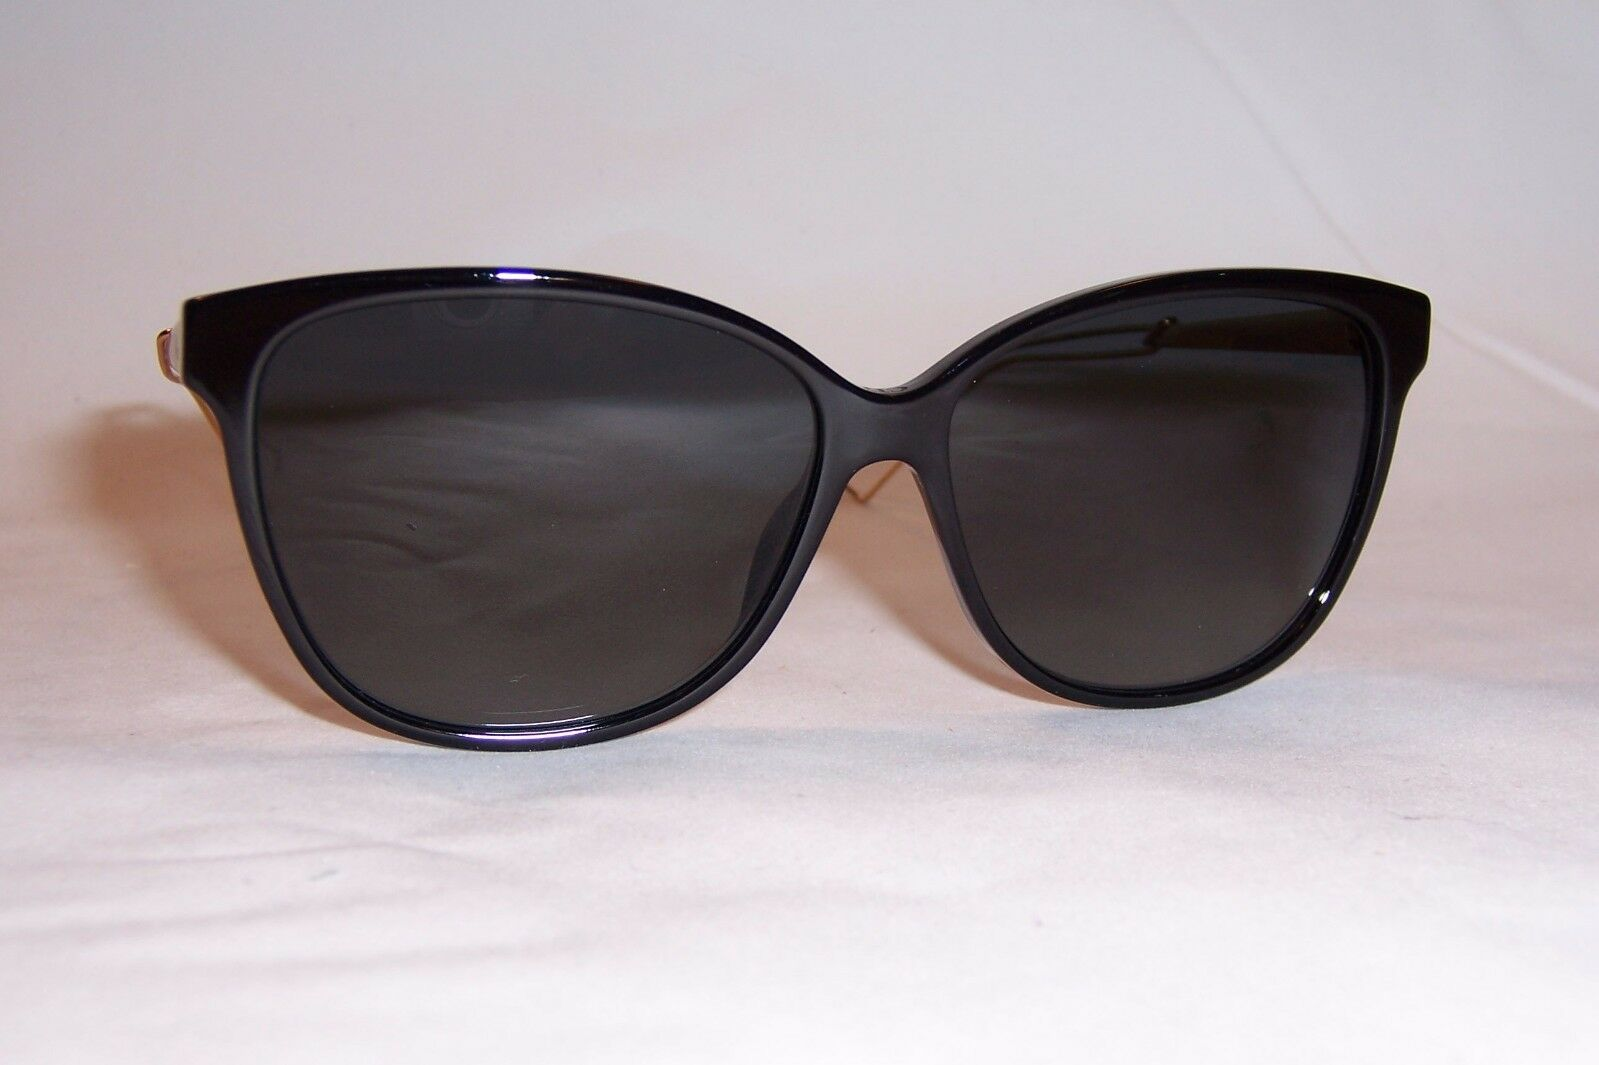 50bbb4a478 Dior Sunglasses Confident 2 Lmn9a Authentic Made in Italy for sale ...